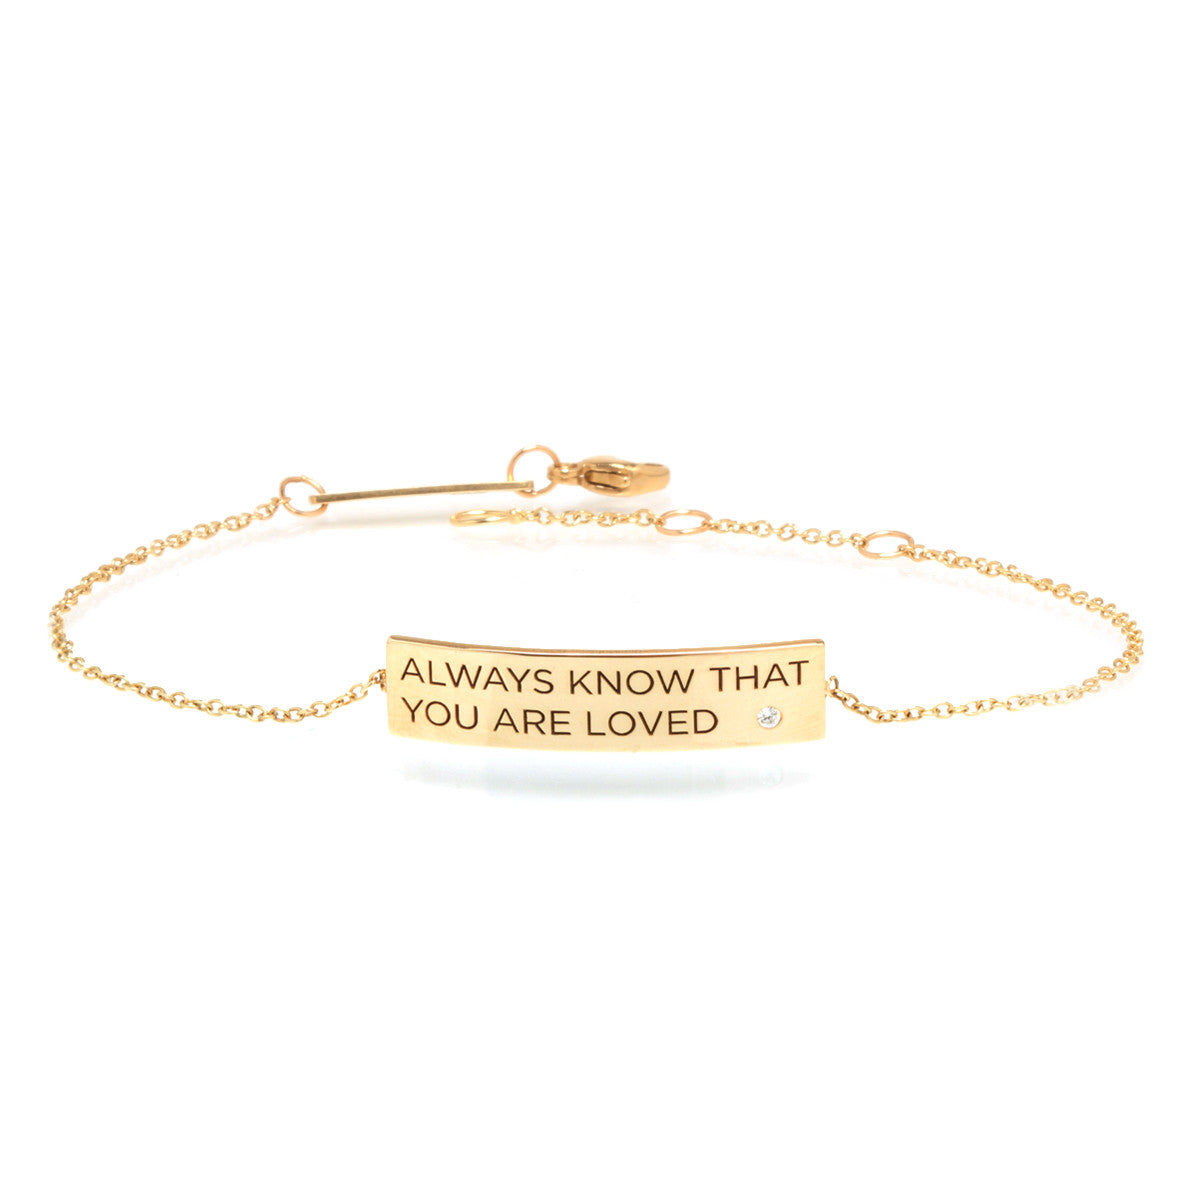 Zoë Chicco Always Know That You Are Loved 14K Gold ID Bracelet with Diamond kzKVQX